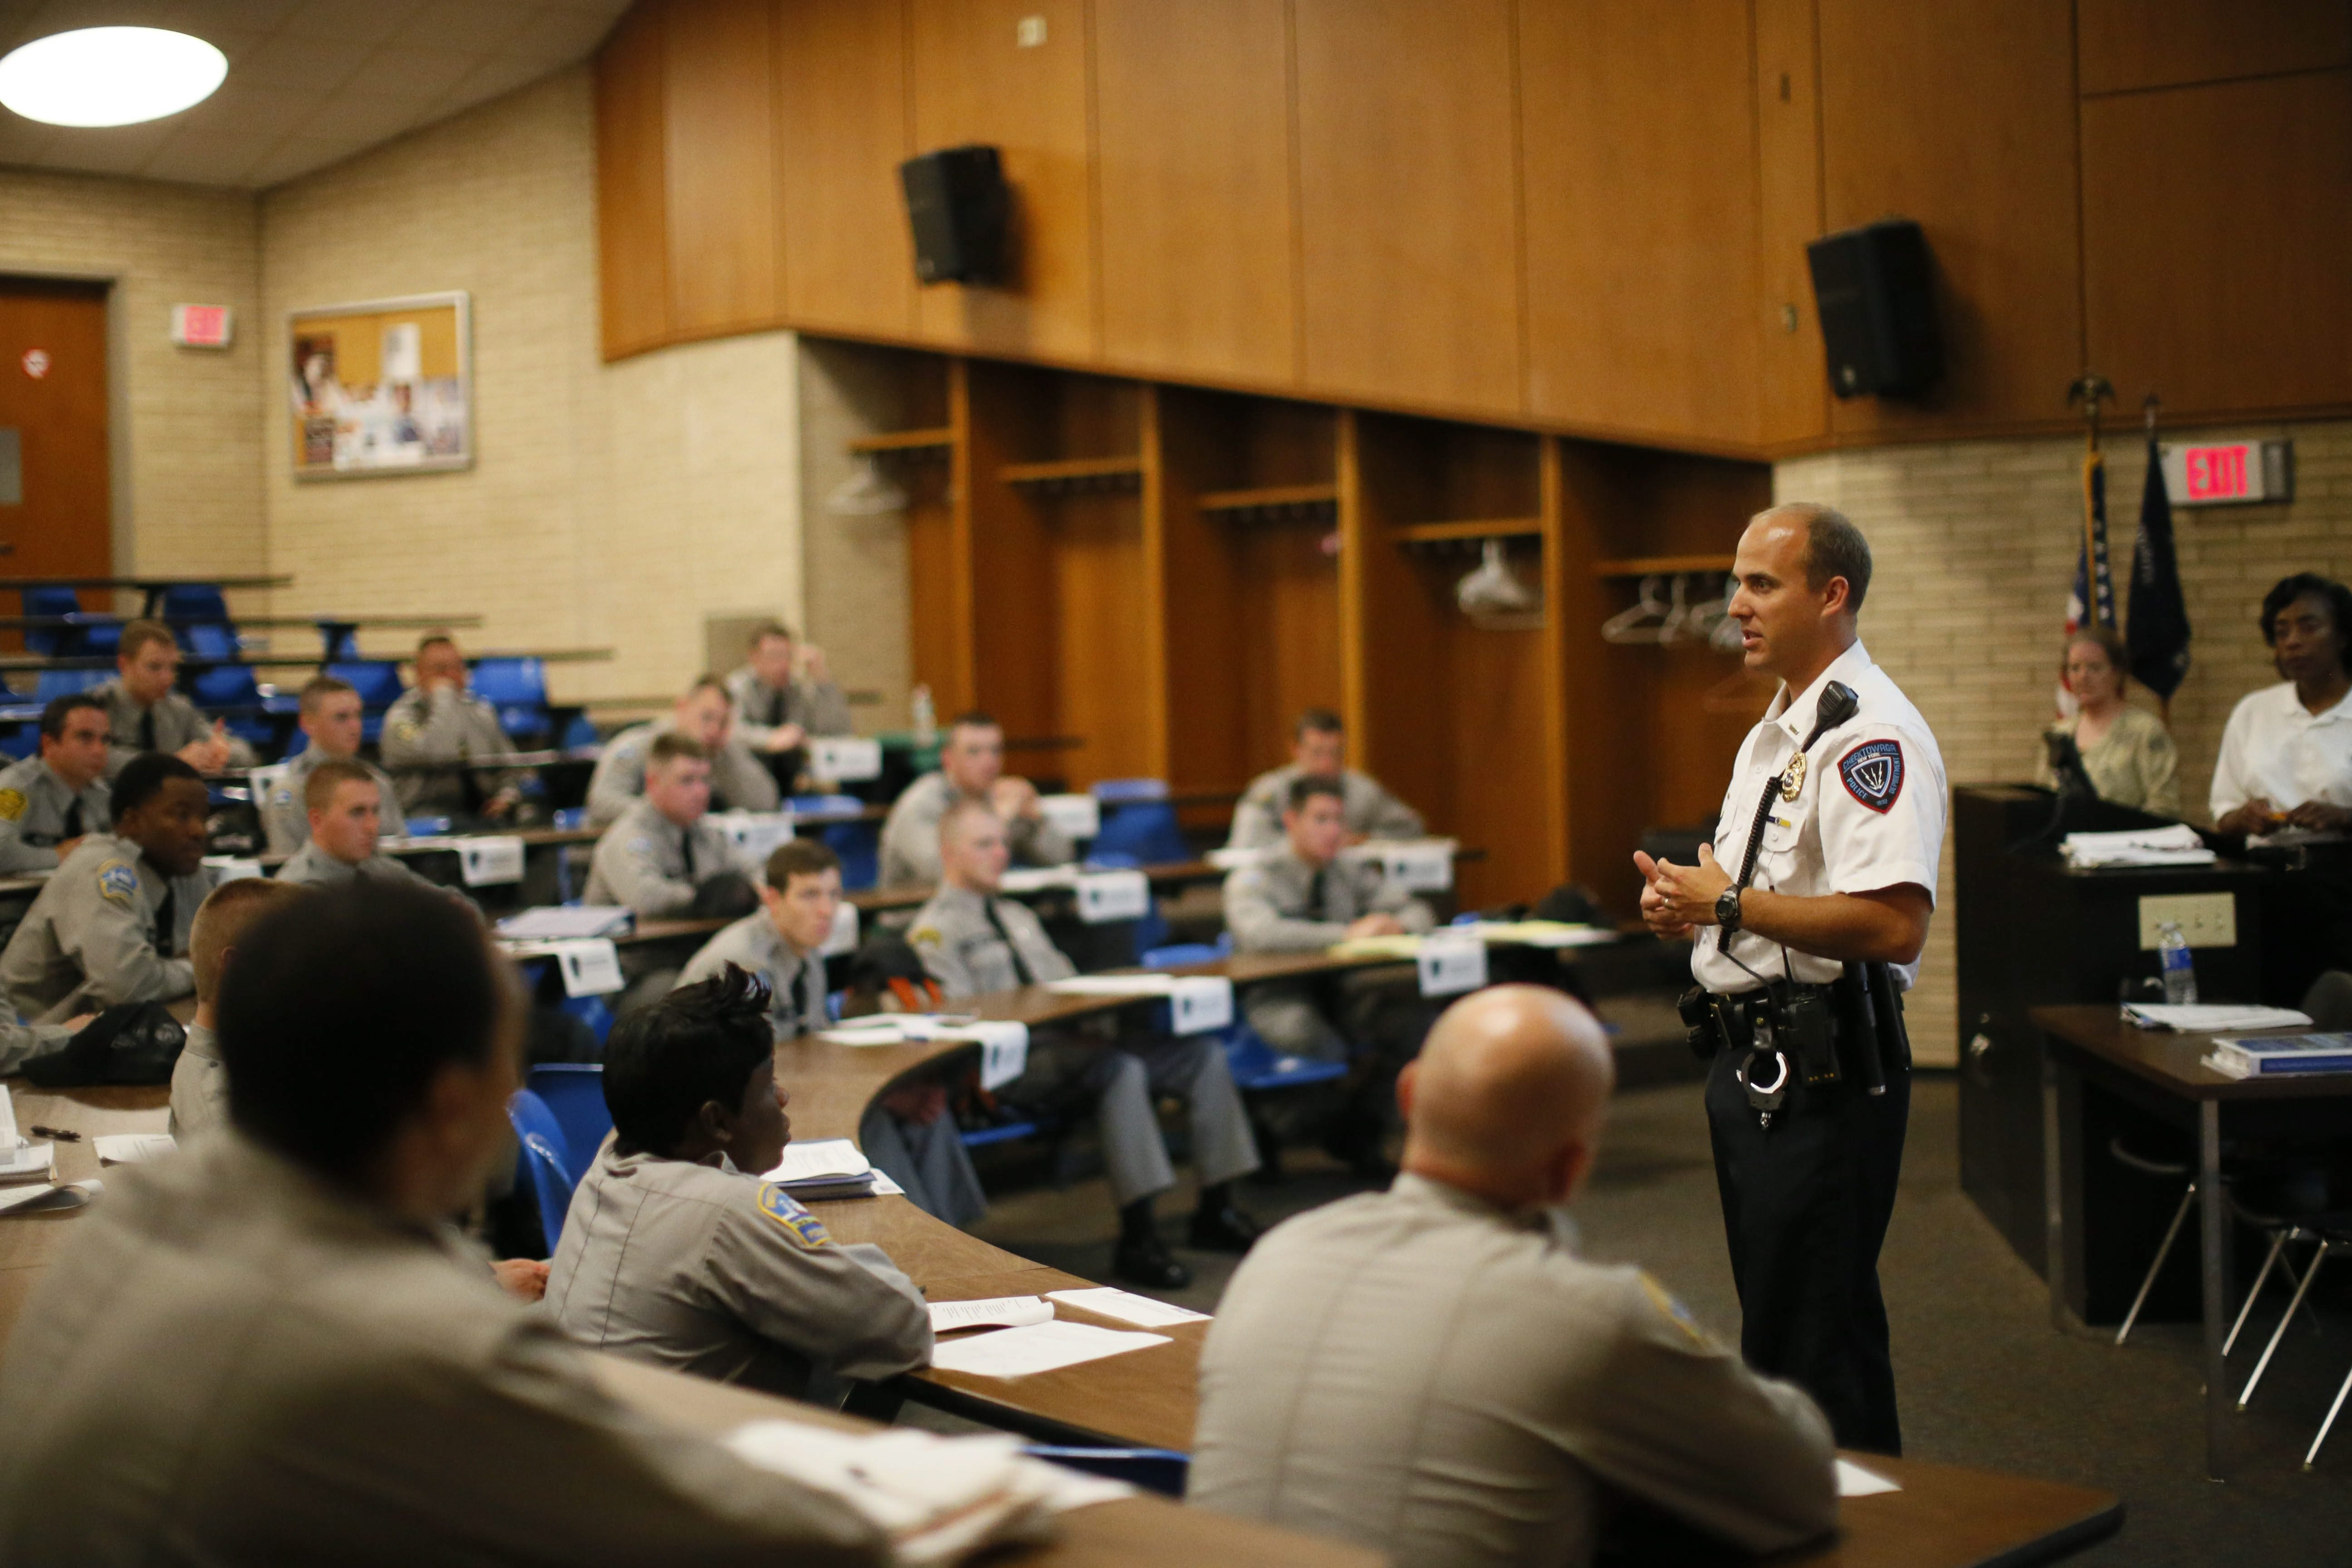 Cheektowaga Police Patrol Lt. Brian Gould is one of three training instructors teaching cadets from local police agencies how to identify and properly deal with the mentally ill at the Law Enforcement Academy at ECC, Monday morning, June 3, 2013.  (Derek Gee/Buffalo News)